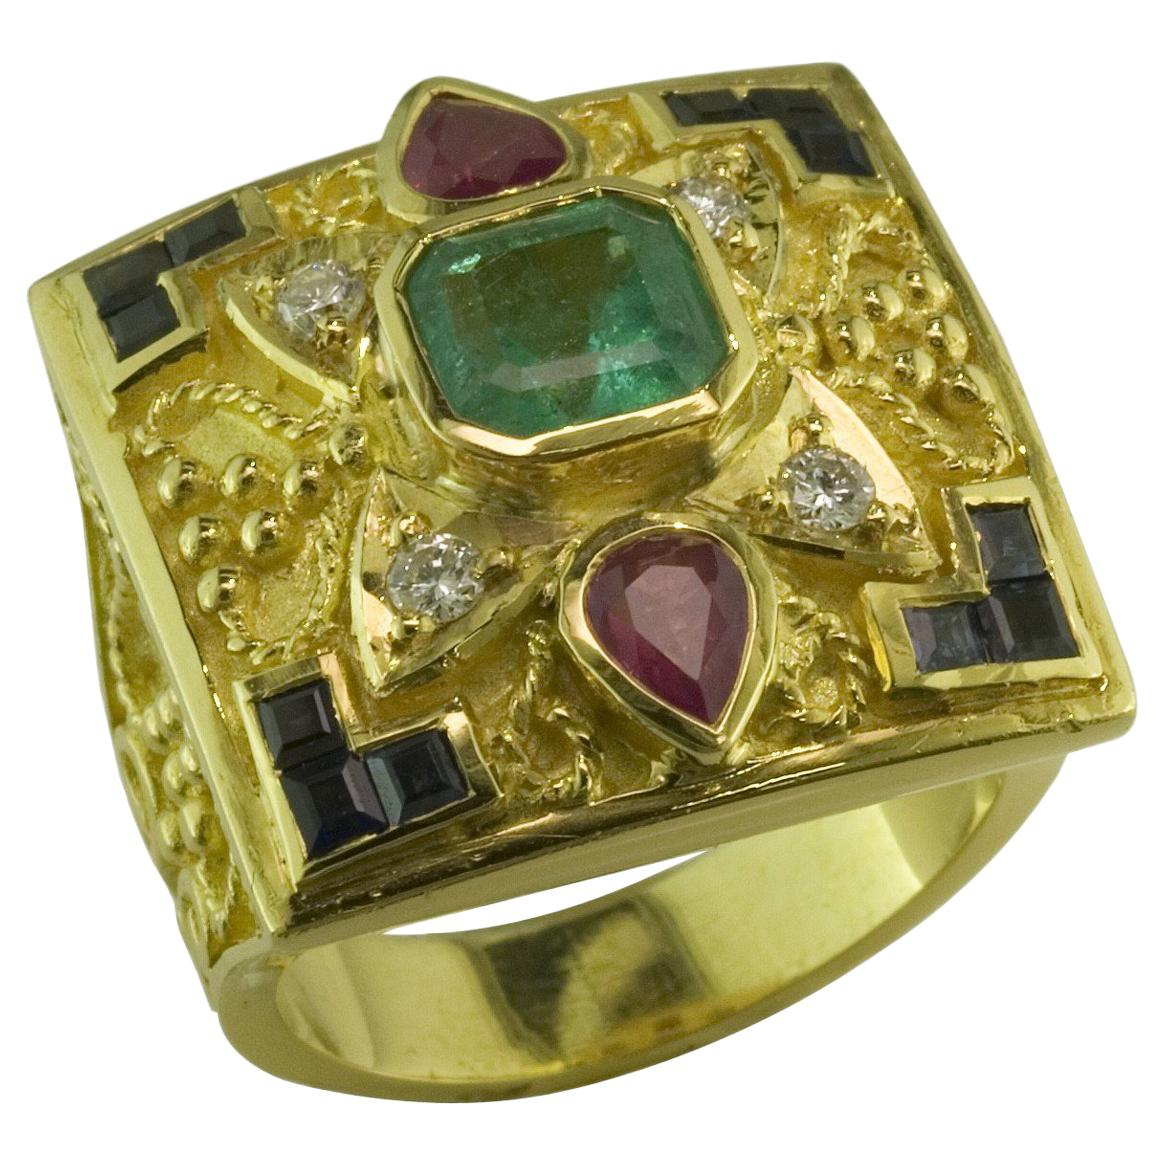 Georgios Collections 18 Karat Yellow Gold Emerald Ring with Sapphires And Rubies